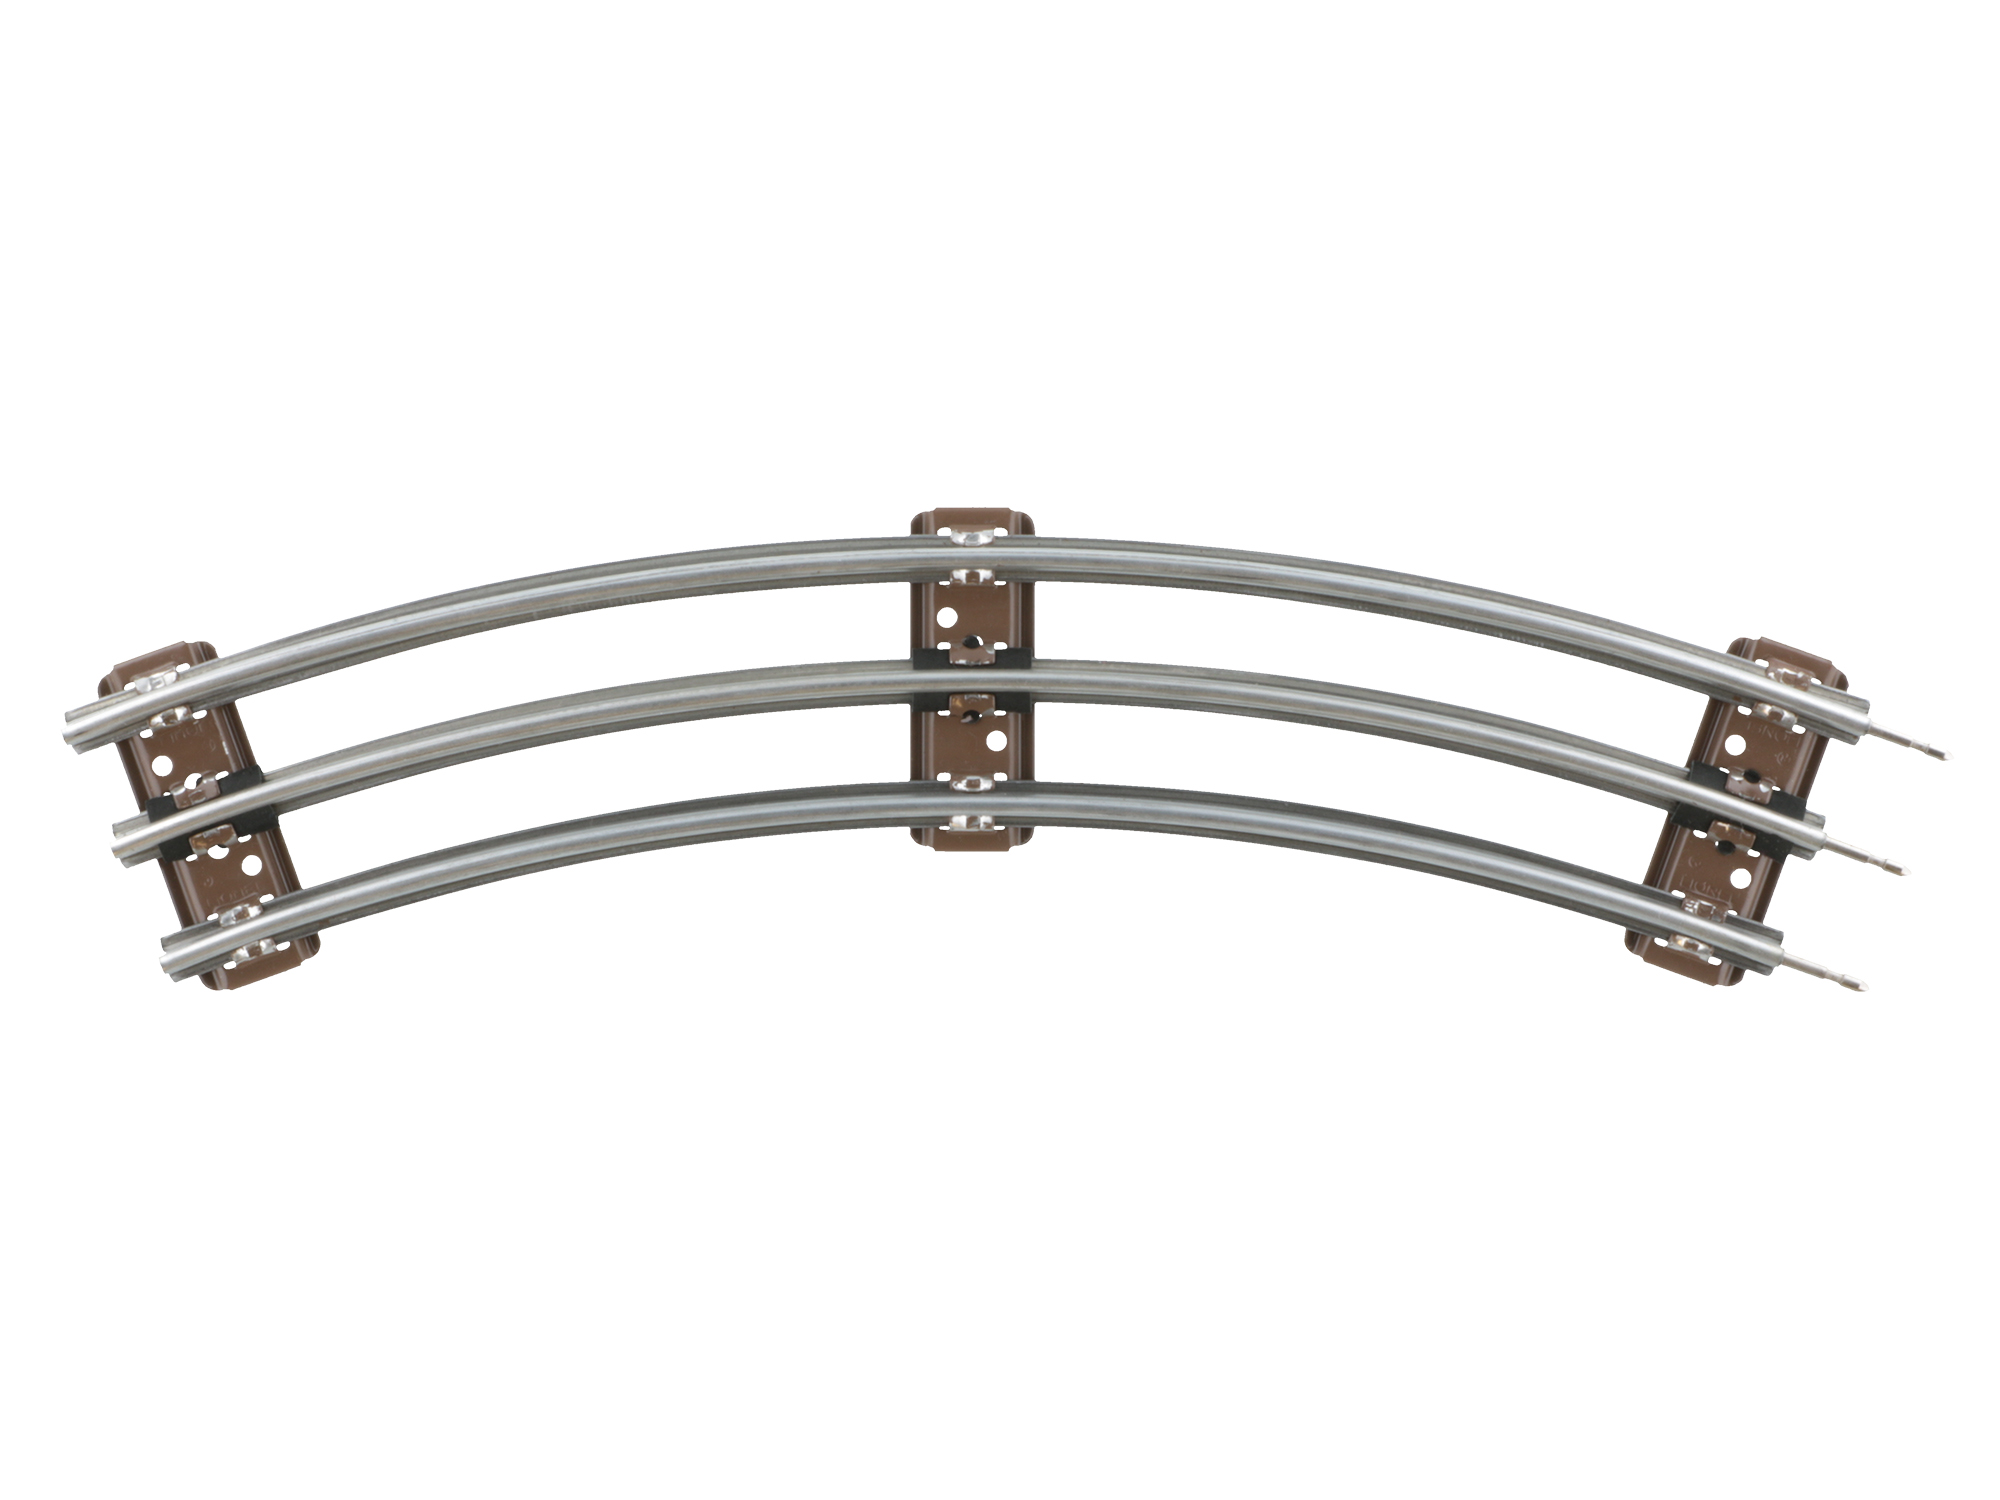 "6-65033 27"" DIAMETER CURVED TRACK"